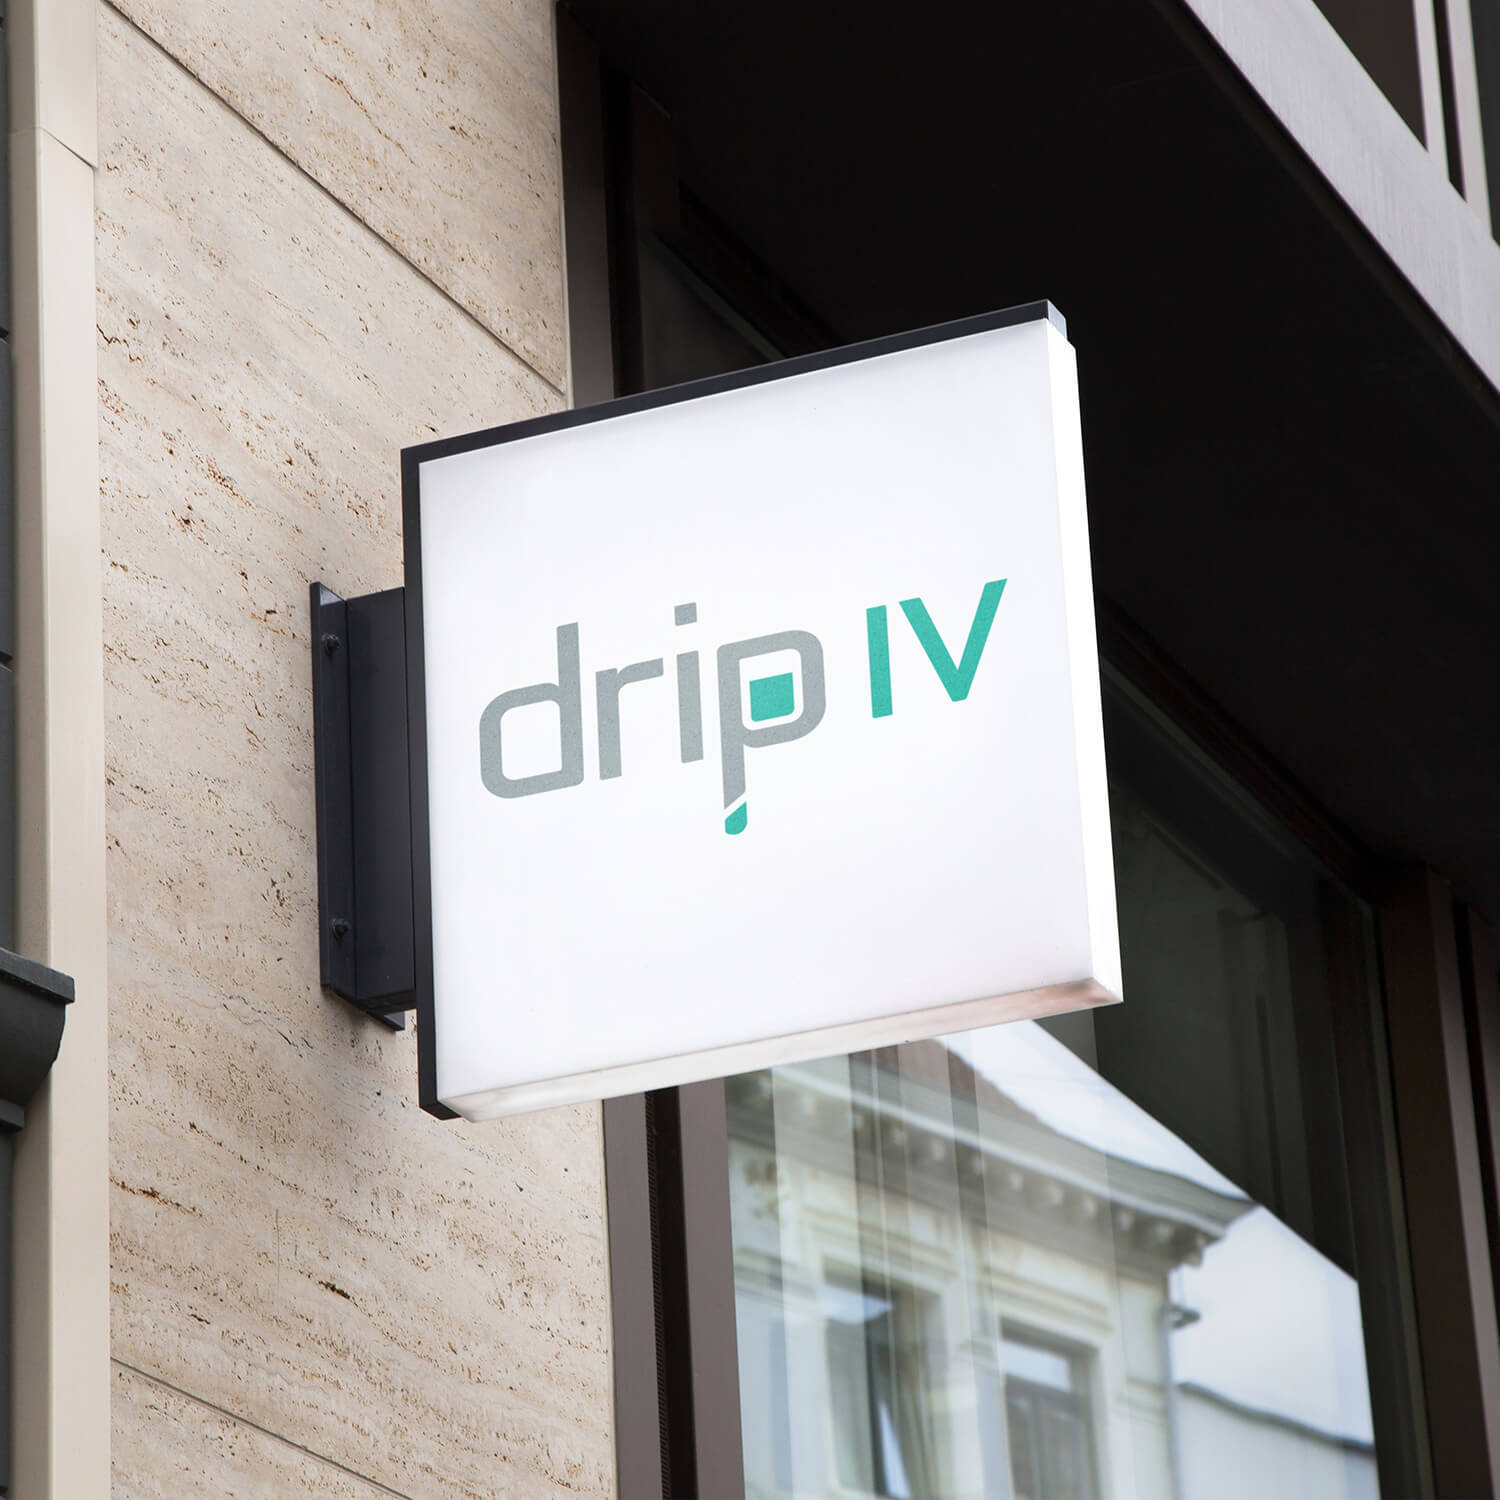 Drip IV Therapy Signage